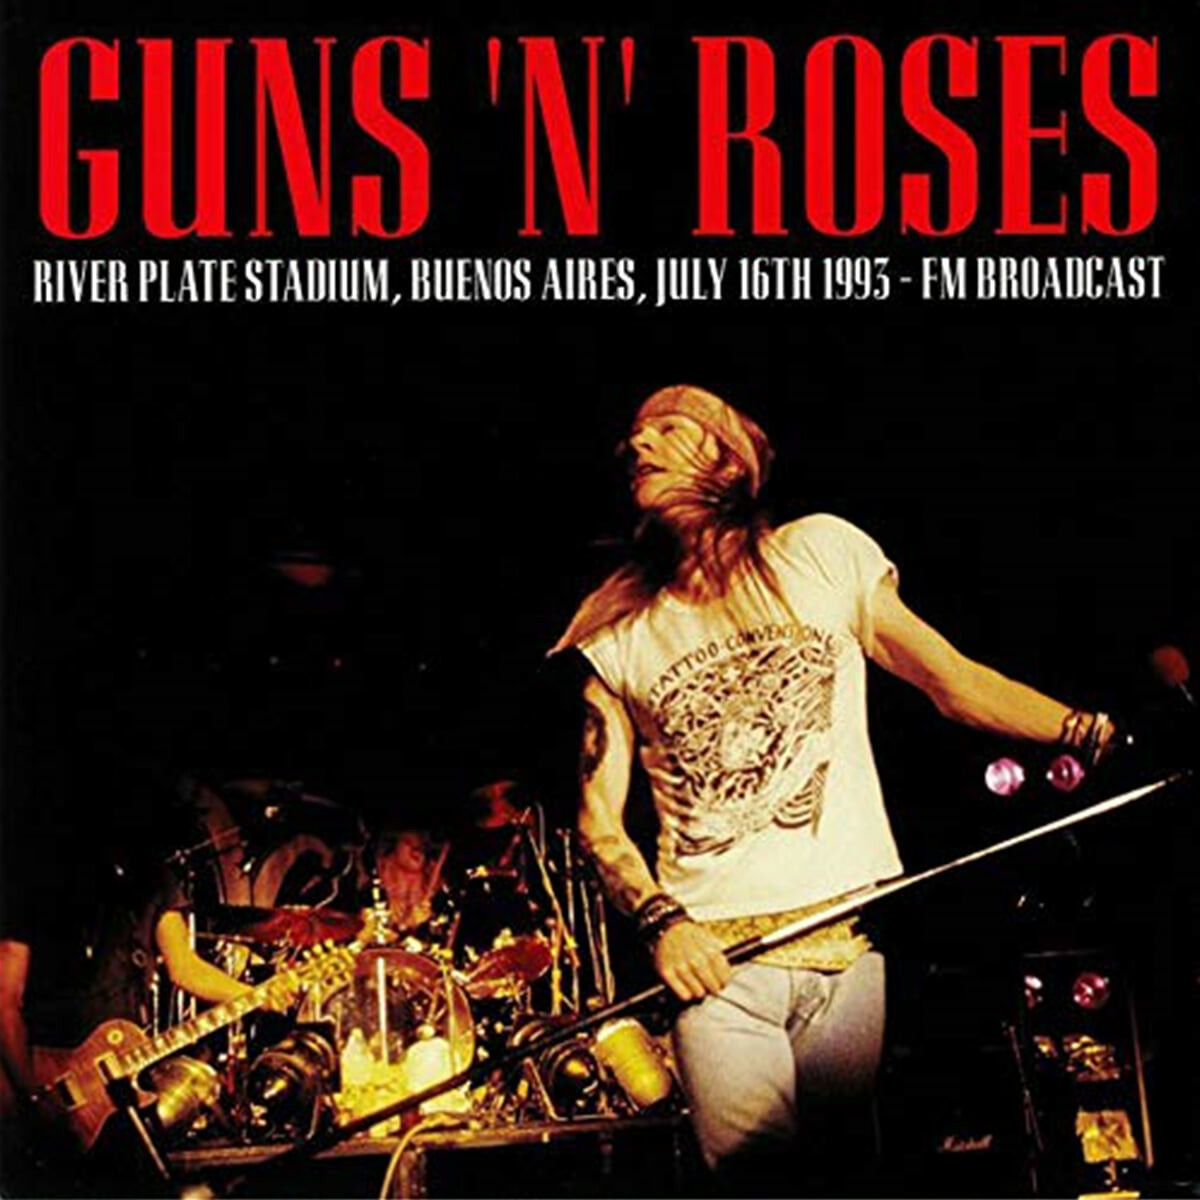 Guns N' Roses (건즈 앤 로지스) - River Plate Stadium Buenos Aires July 16th 1993 : FM Broadcast [LP]